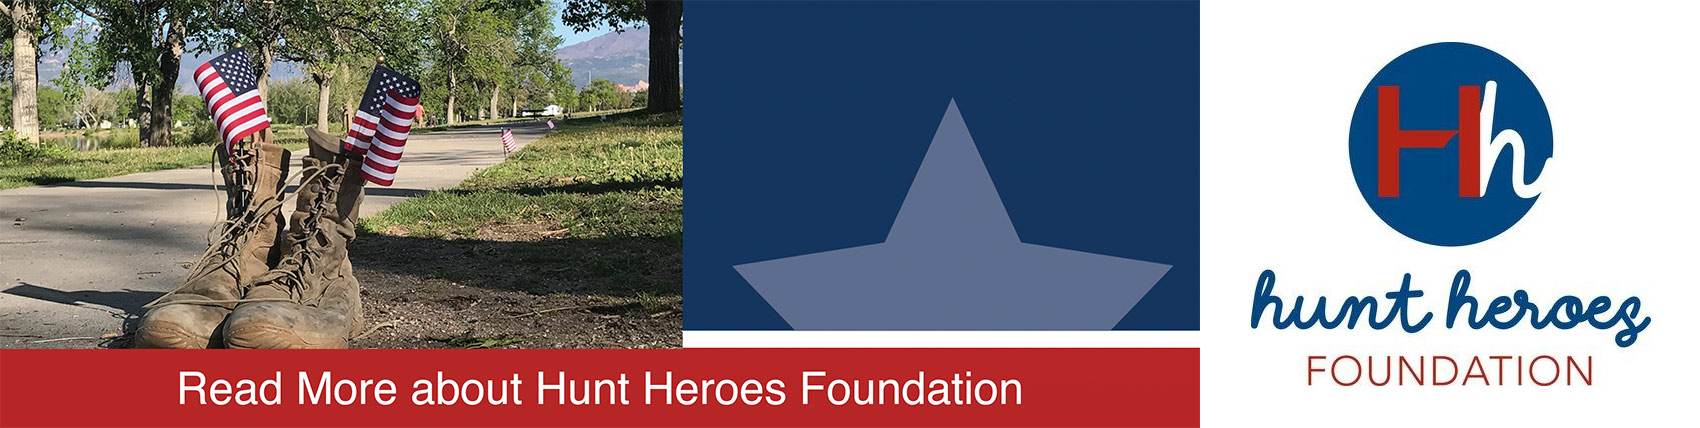 Hunt Heroes Foundation Brochure